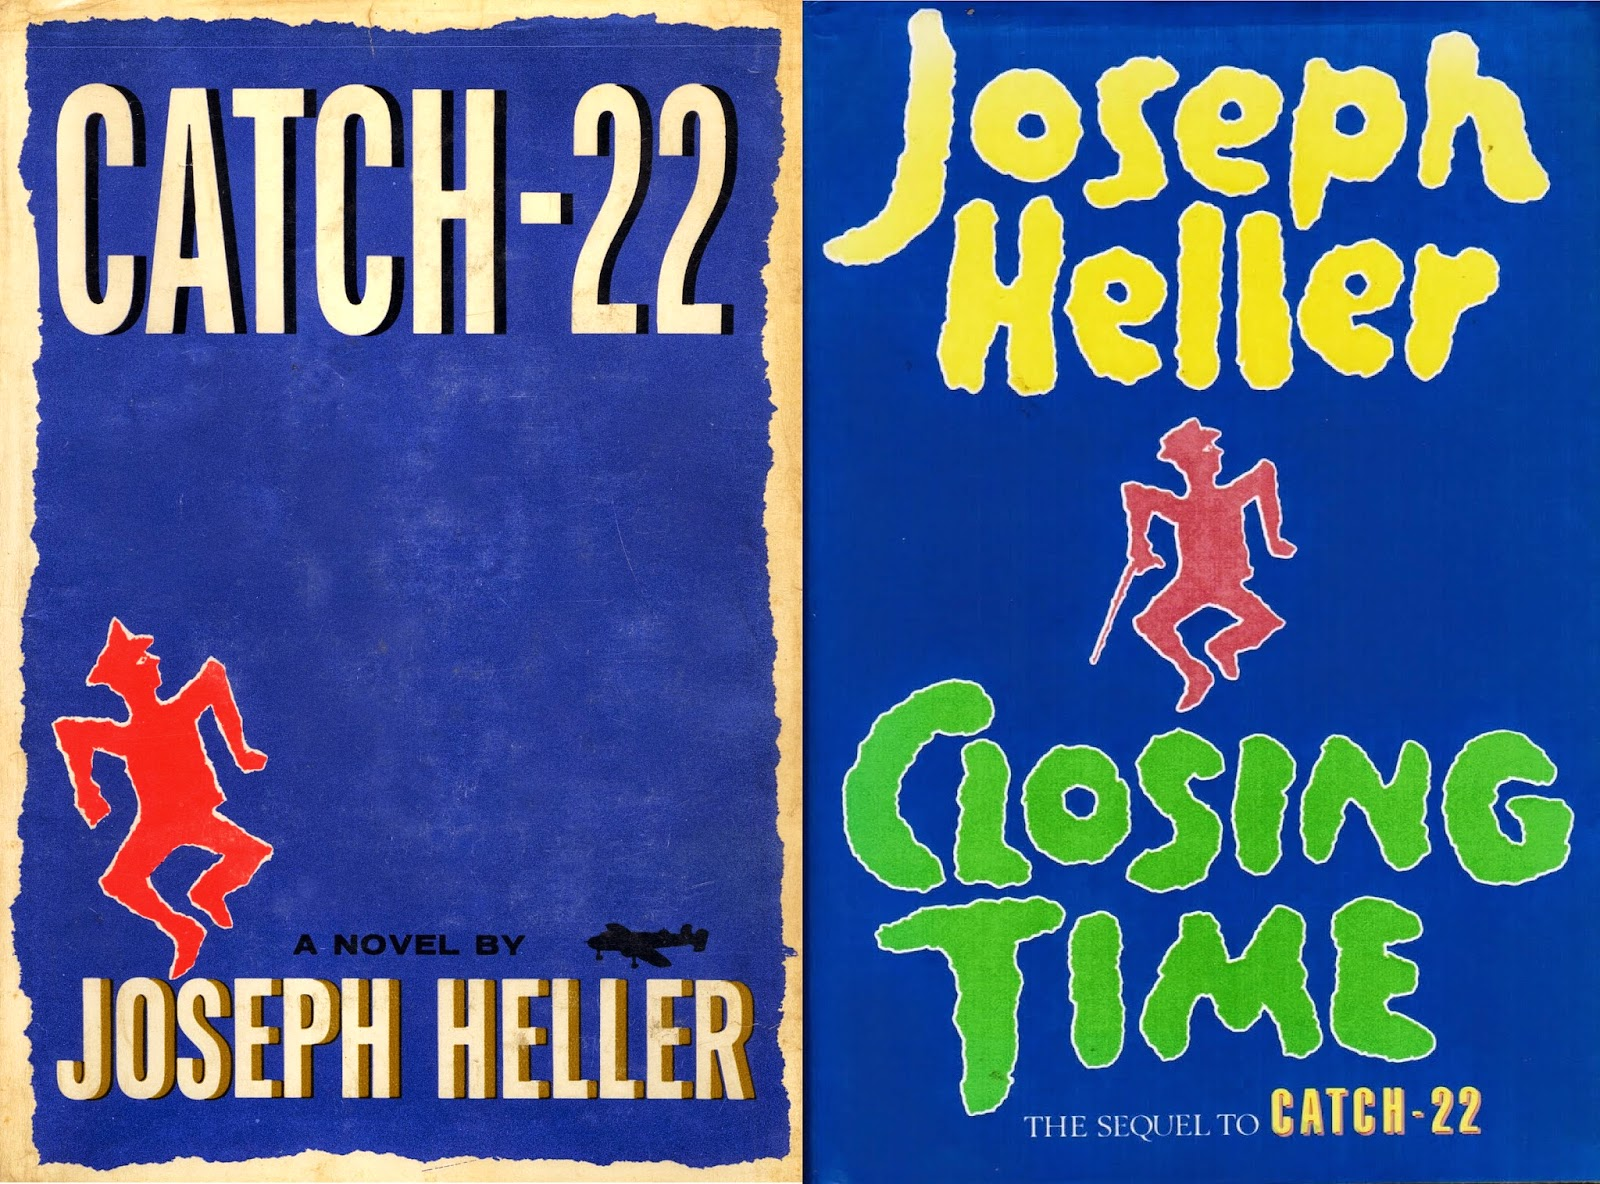 The 100 best novels: No 80 – Catch-22 by Joseph Heller (1961)